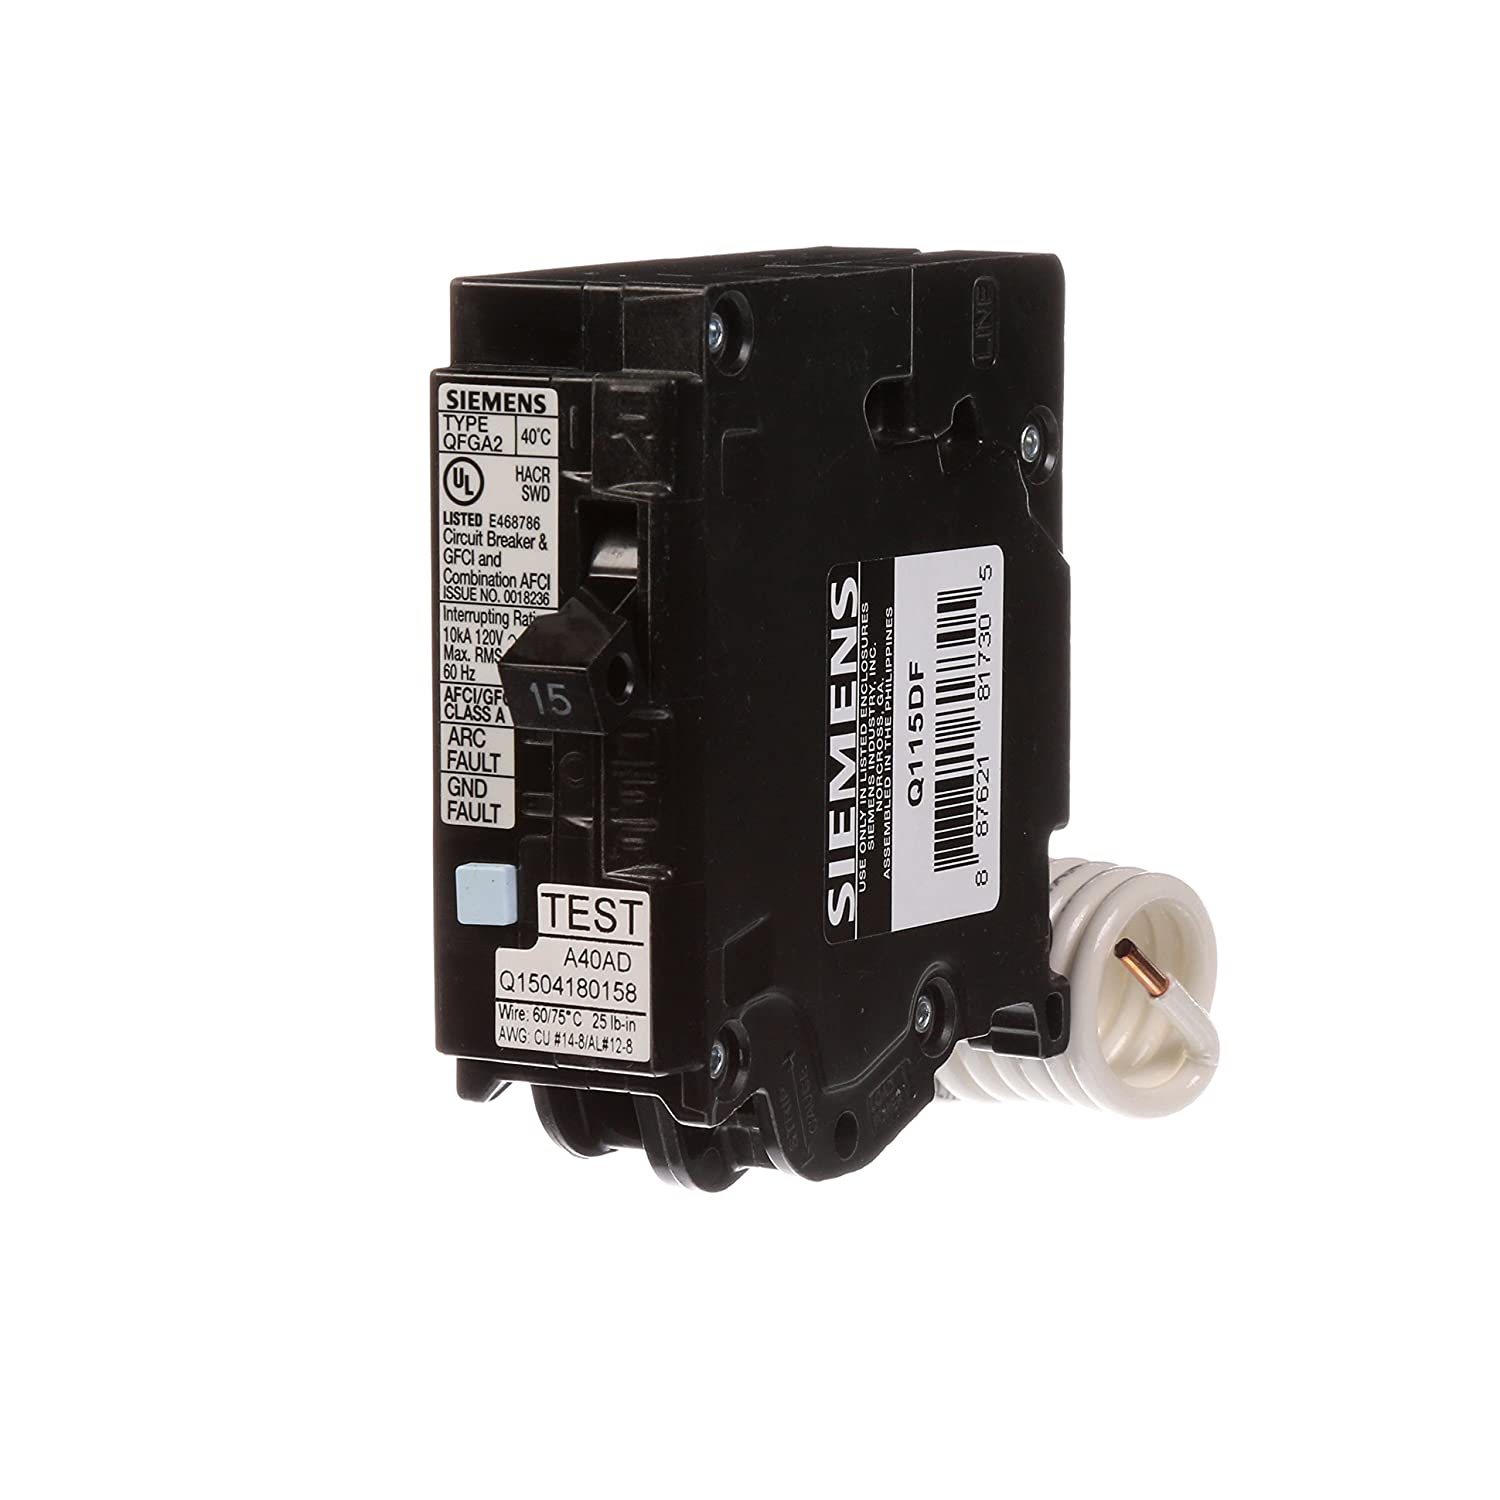 Siemens Q115df 15 Amp Afci Gfci Dual Function Circuit Breaker Plug Keeps Immediately Tripping After Reset Electrical On Load Center Style